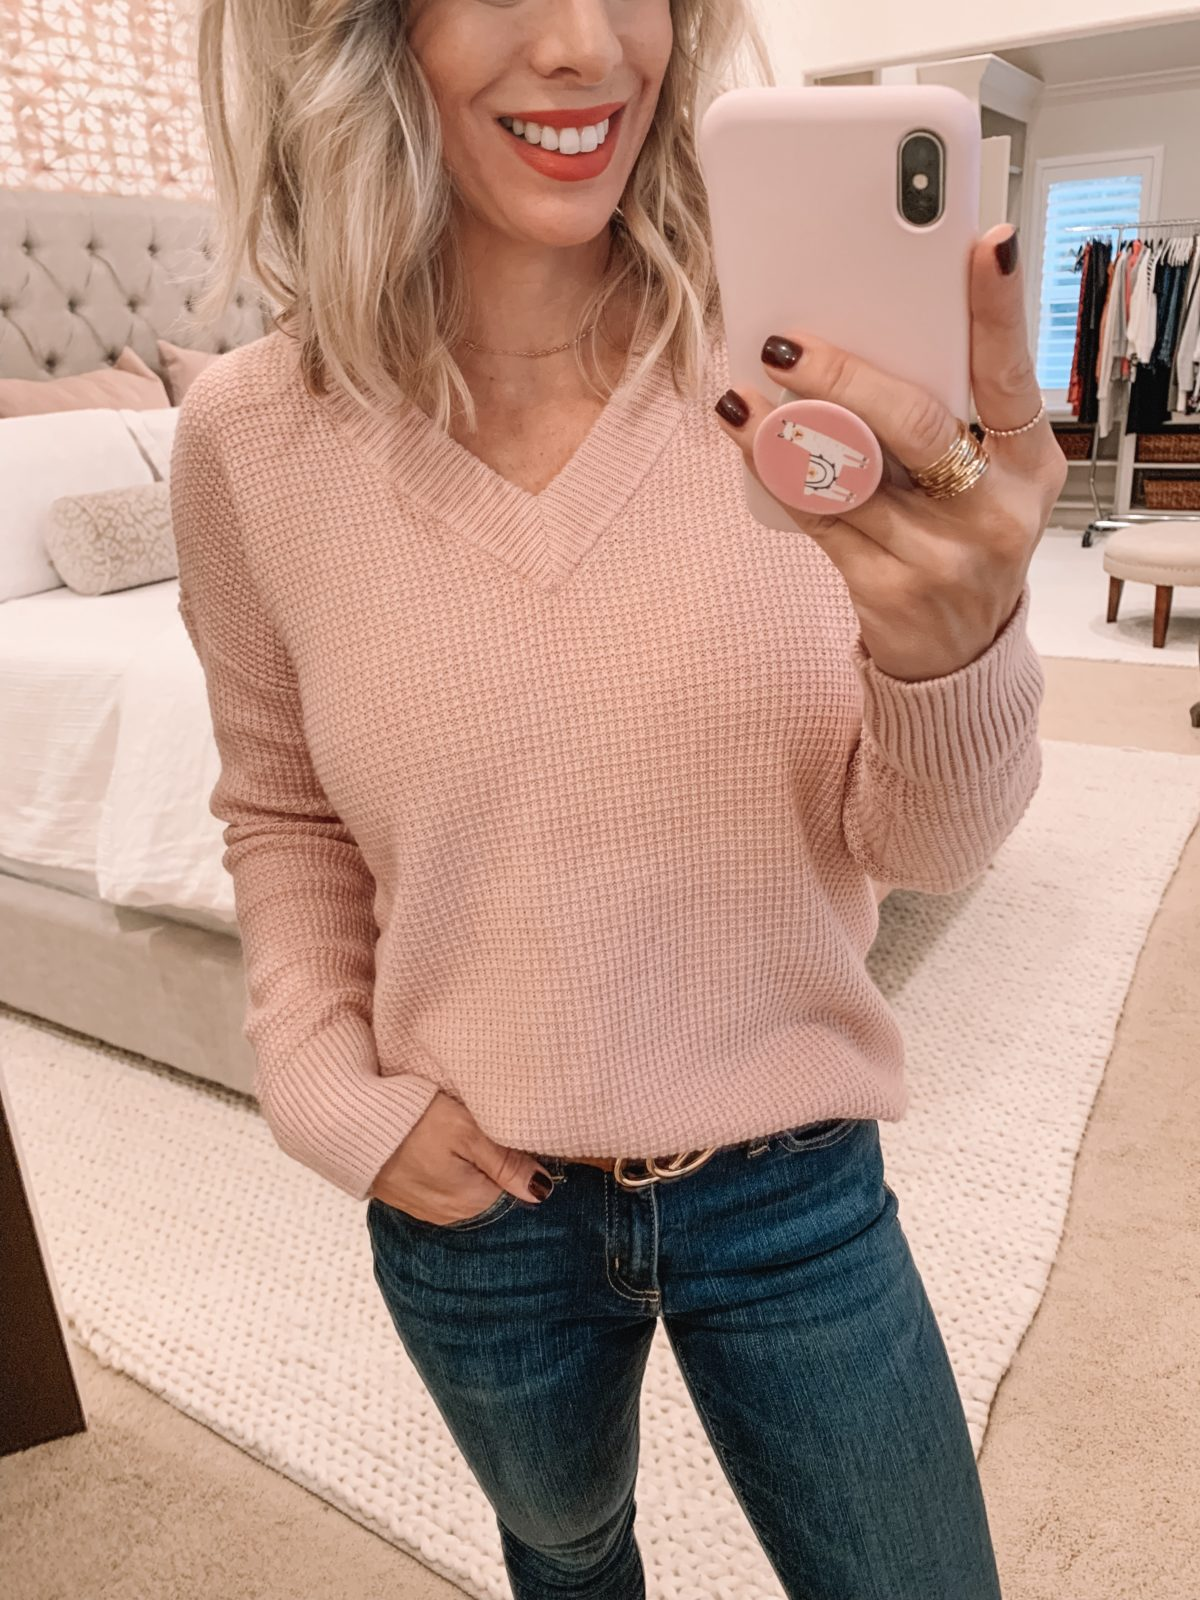 Amazon fashion haul, pink sweater and jeans